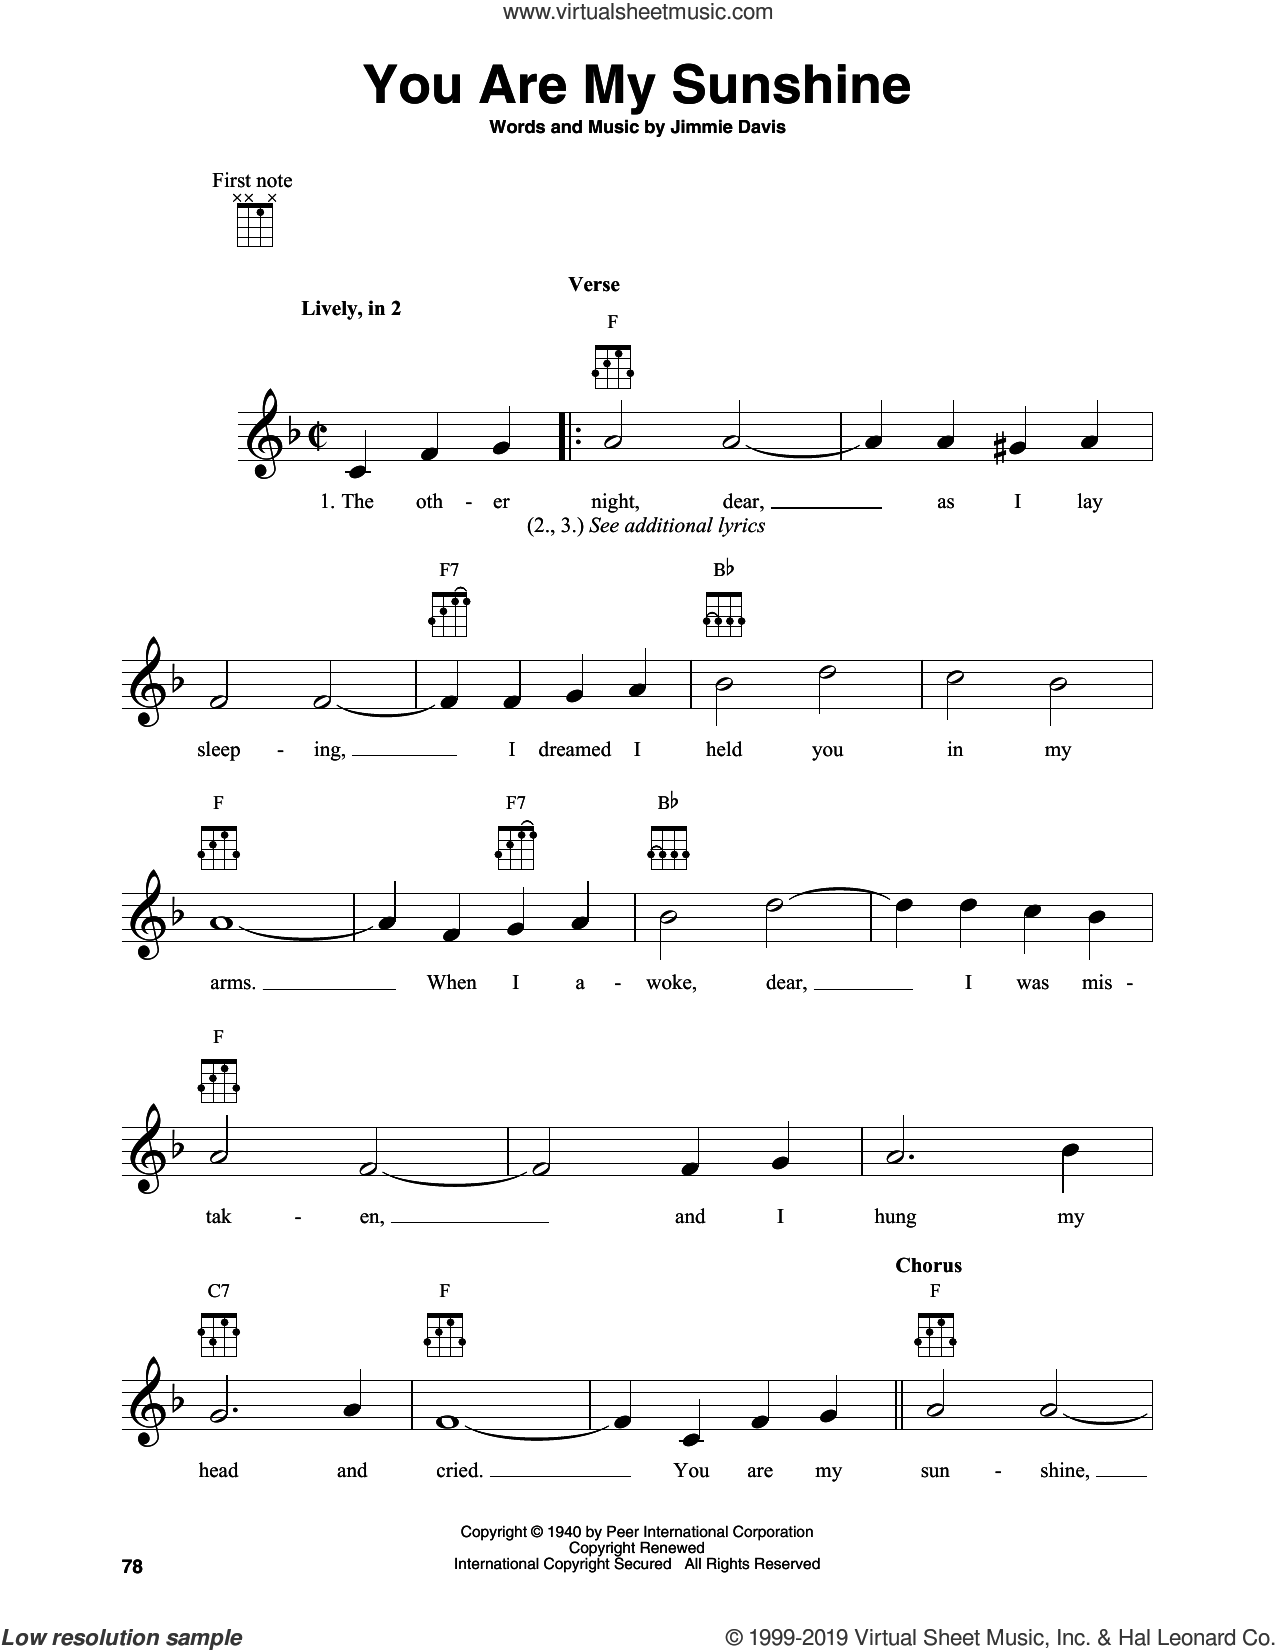 You Are My Sunshine sheet music for banjo solo by Jimmie Davis, intermediate skill level